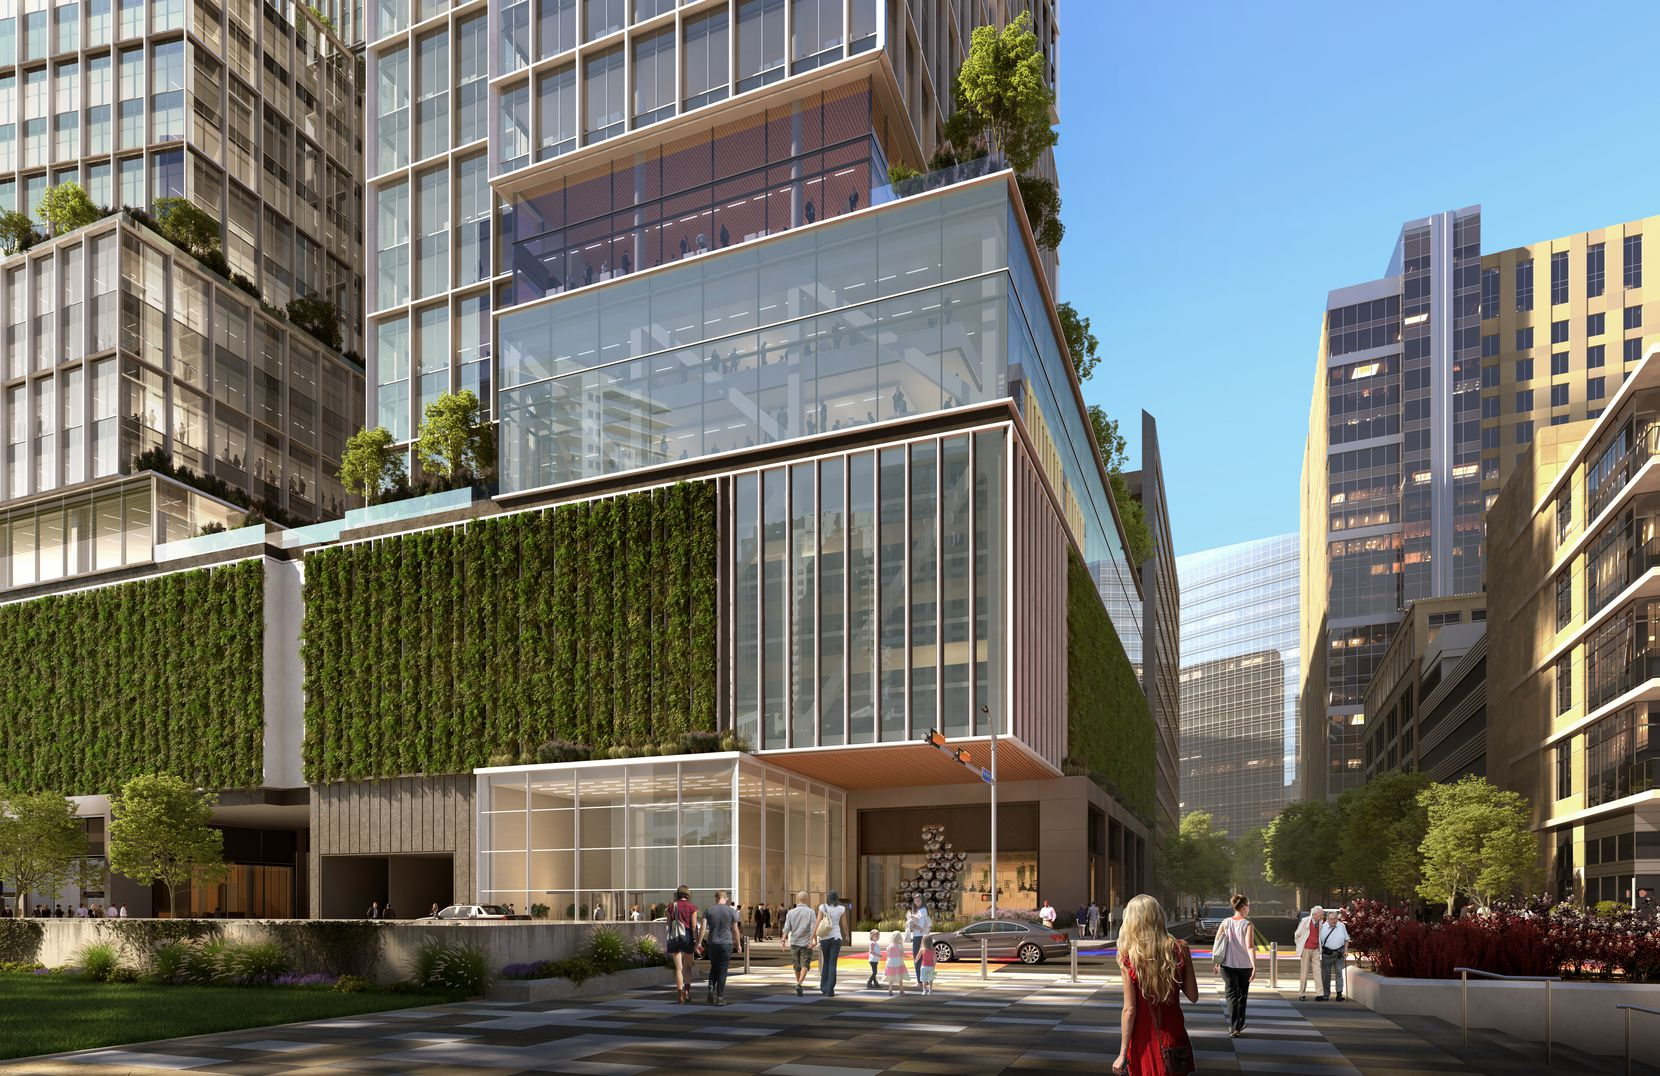 The new office tower would have about 8,000 square feet of ground floor retail.